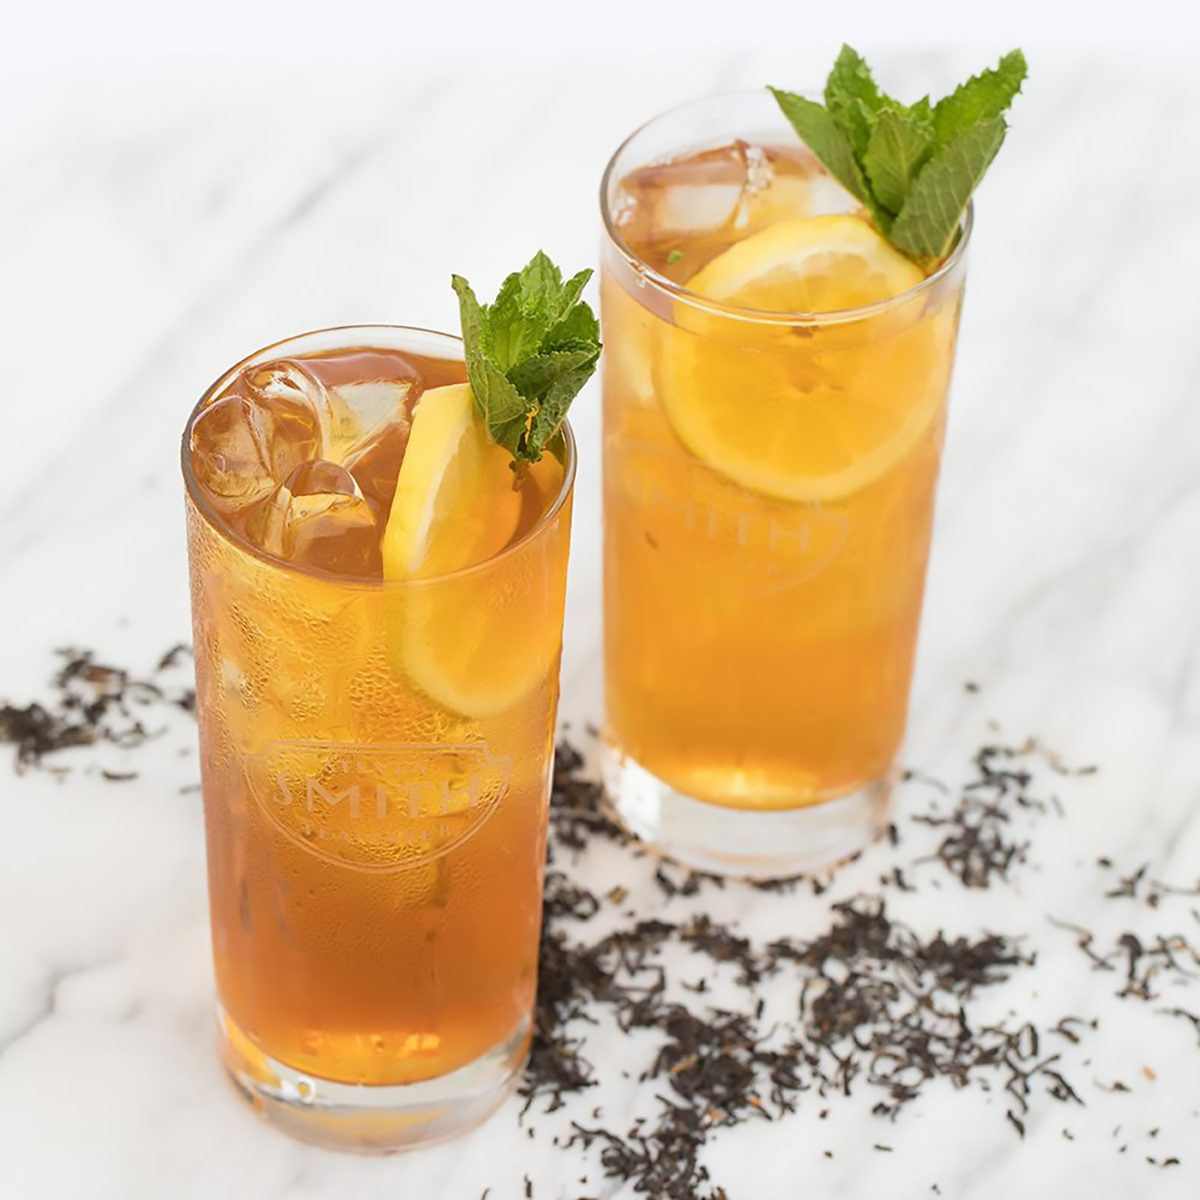 EXCEPTIONAL ICED TEA